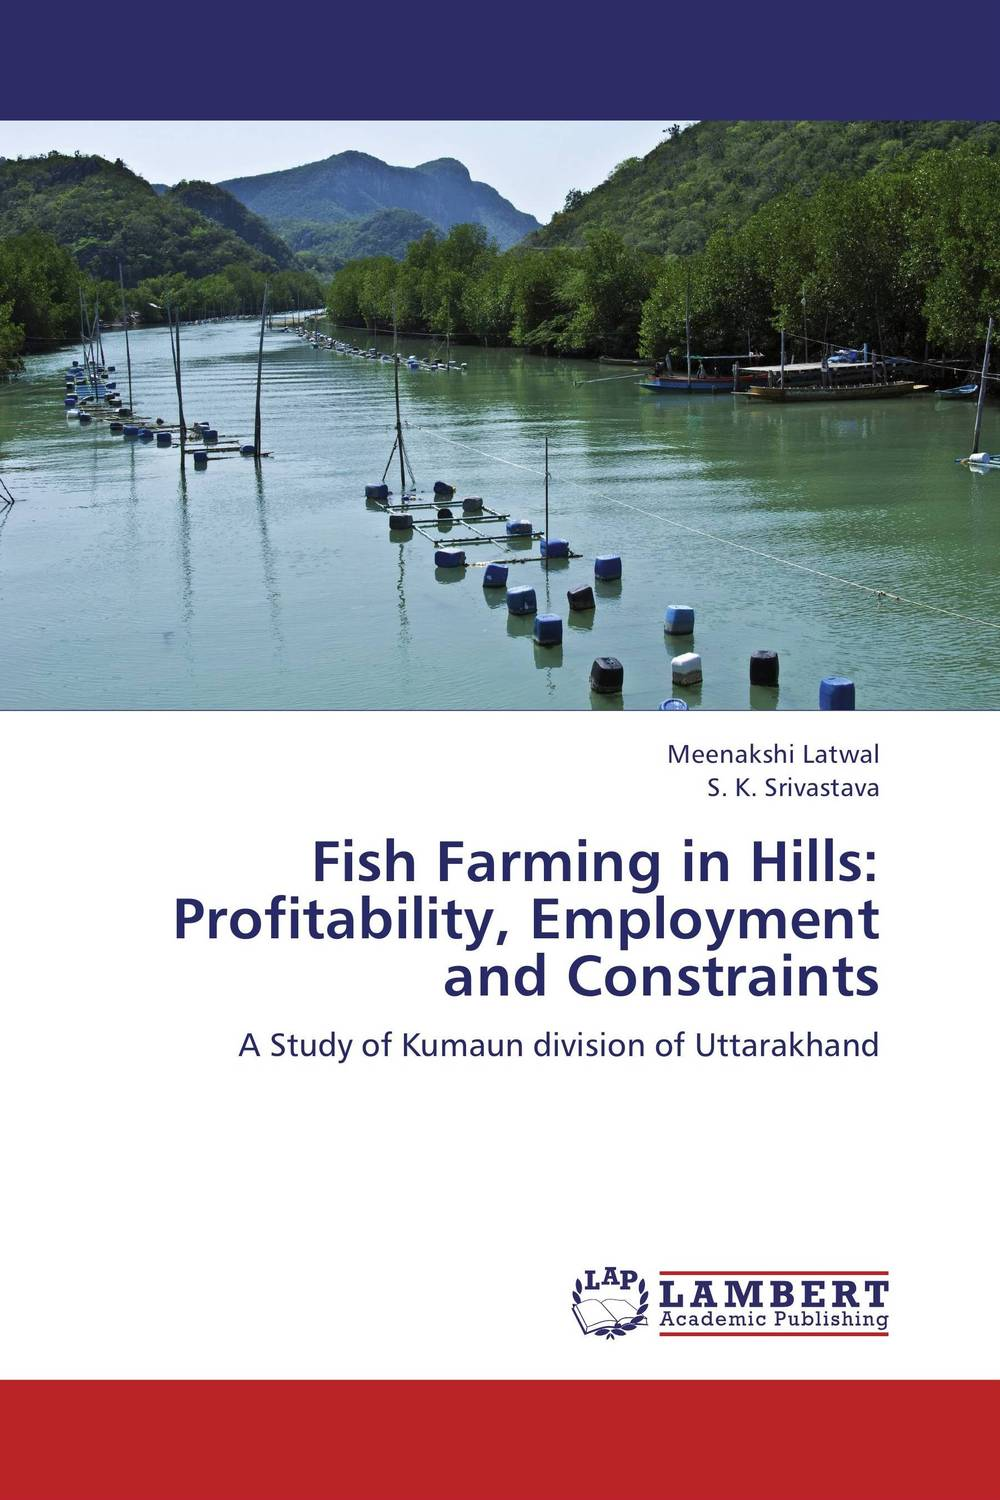 Fish Farming in Hills: Profitability, Employment and Constraints marvin tolentino and angelo dullas subjective well being and farming experiences of filipino children